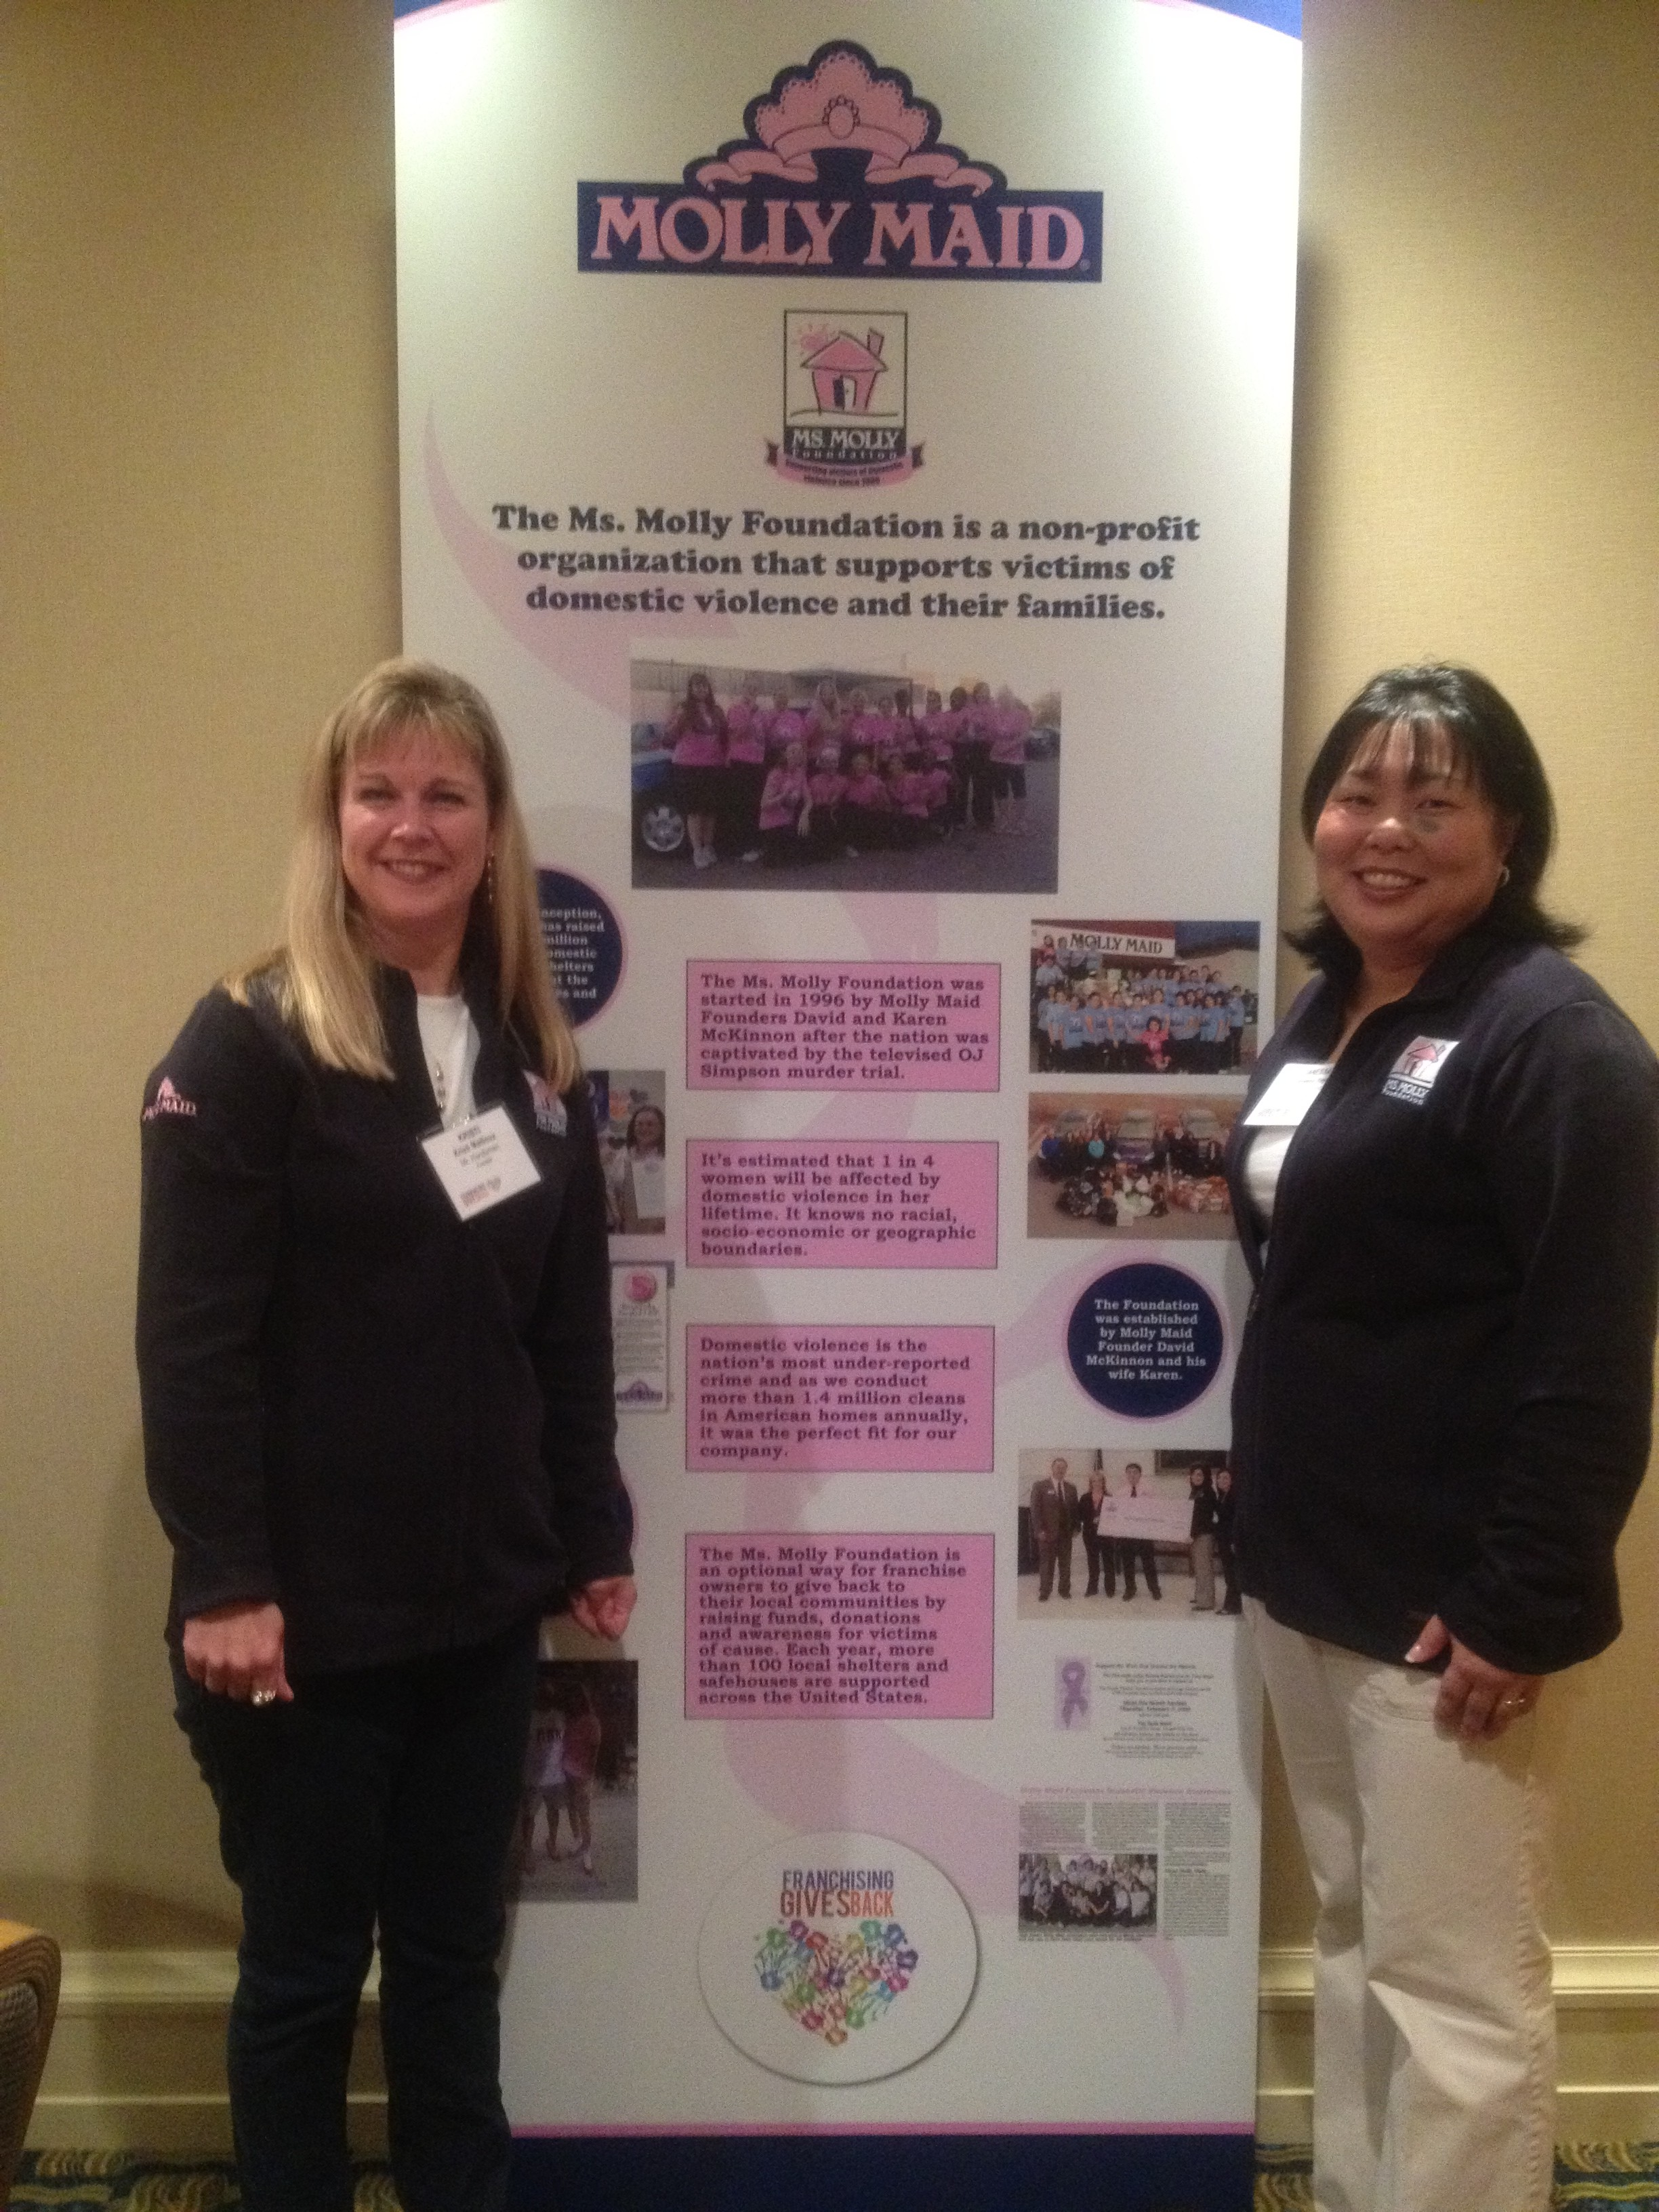 Kristi Mailloux and Danessa Itaya represented the Ms. Molly Foundation at the 2012 IFA Franchising Gives Back event.